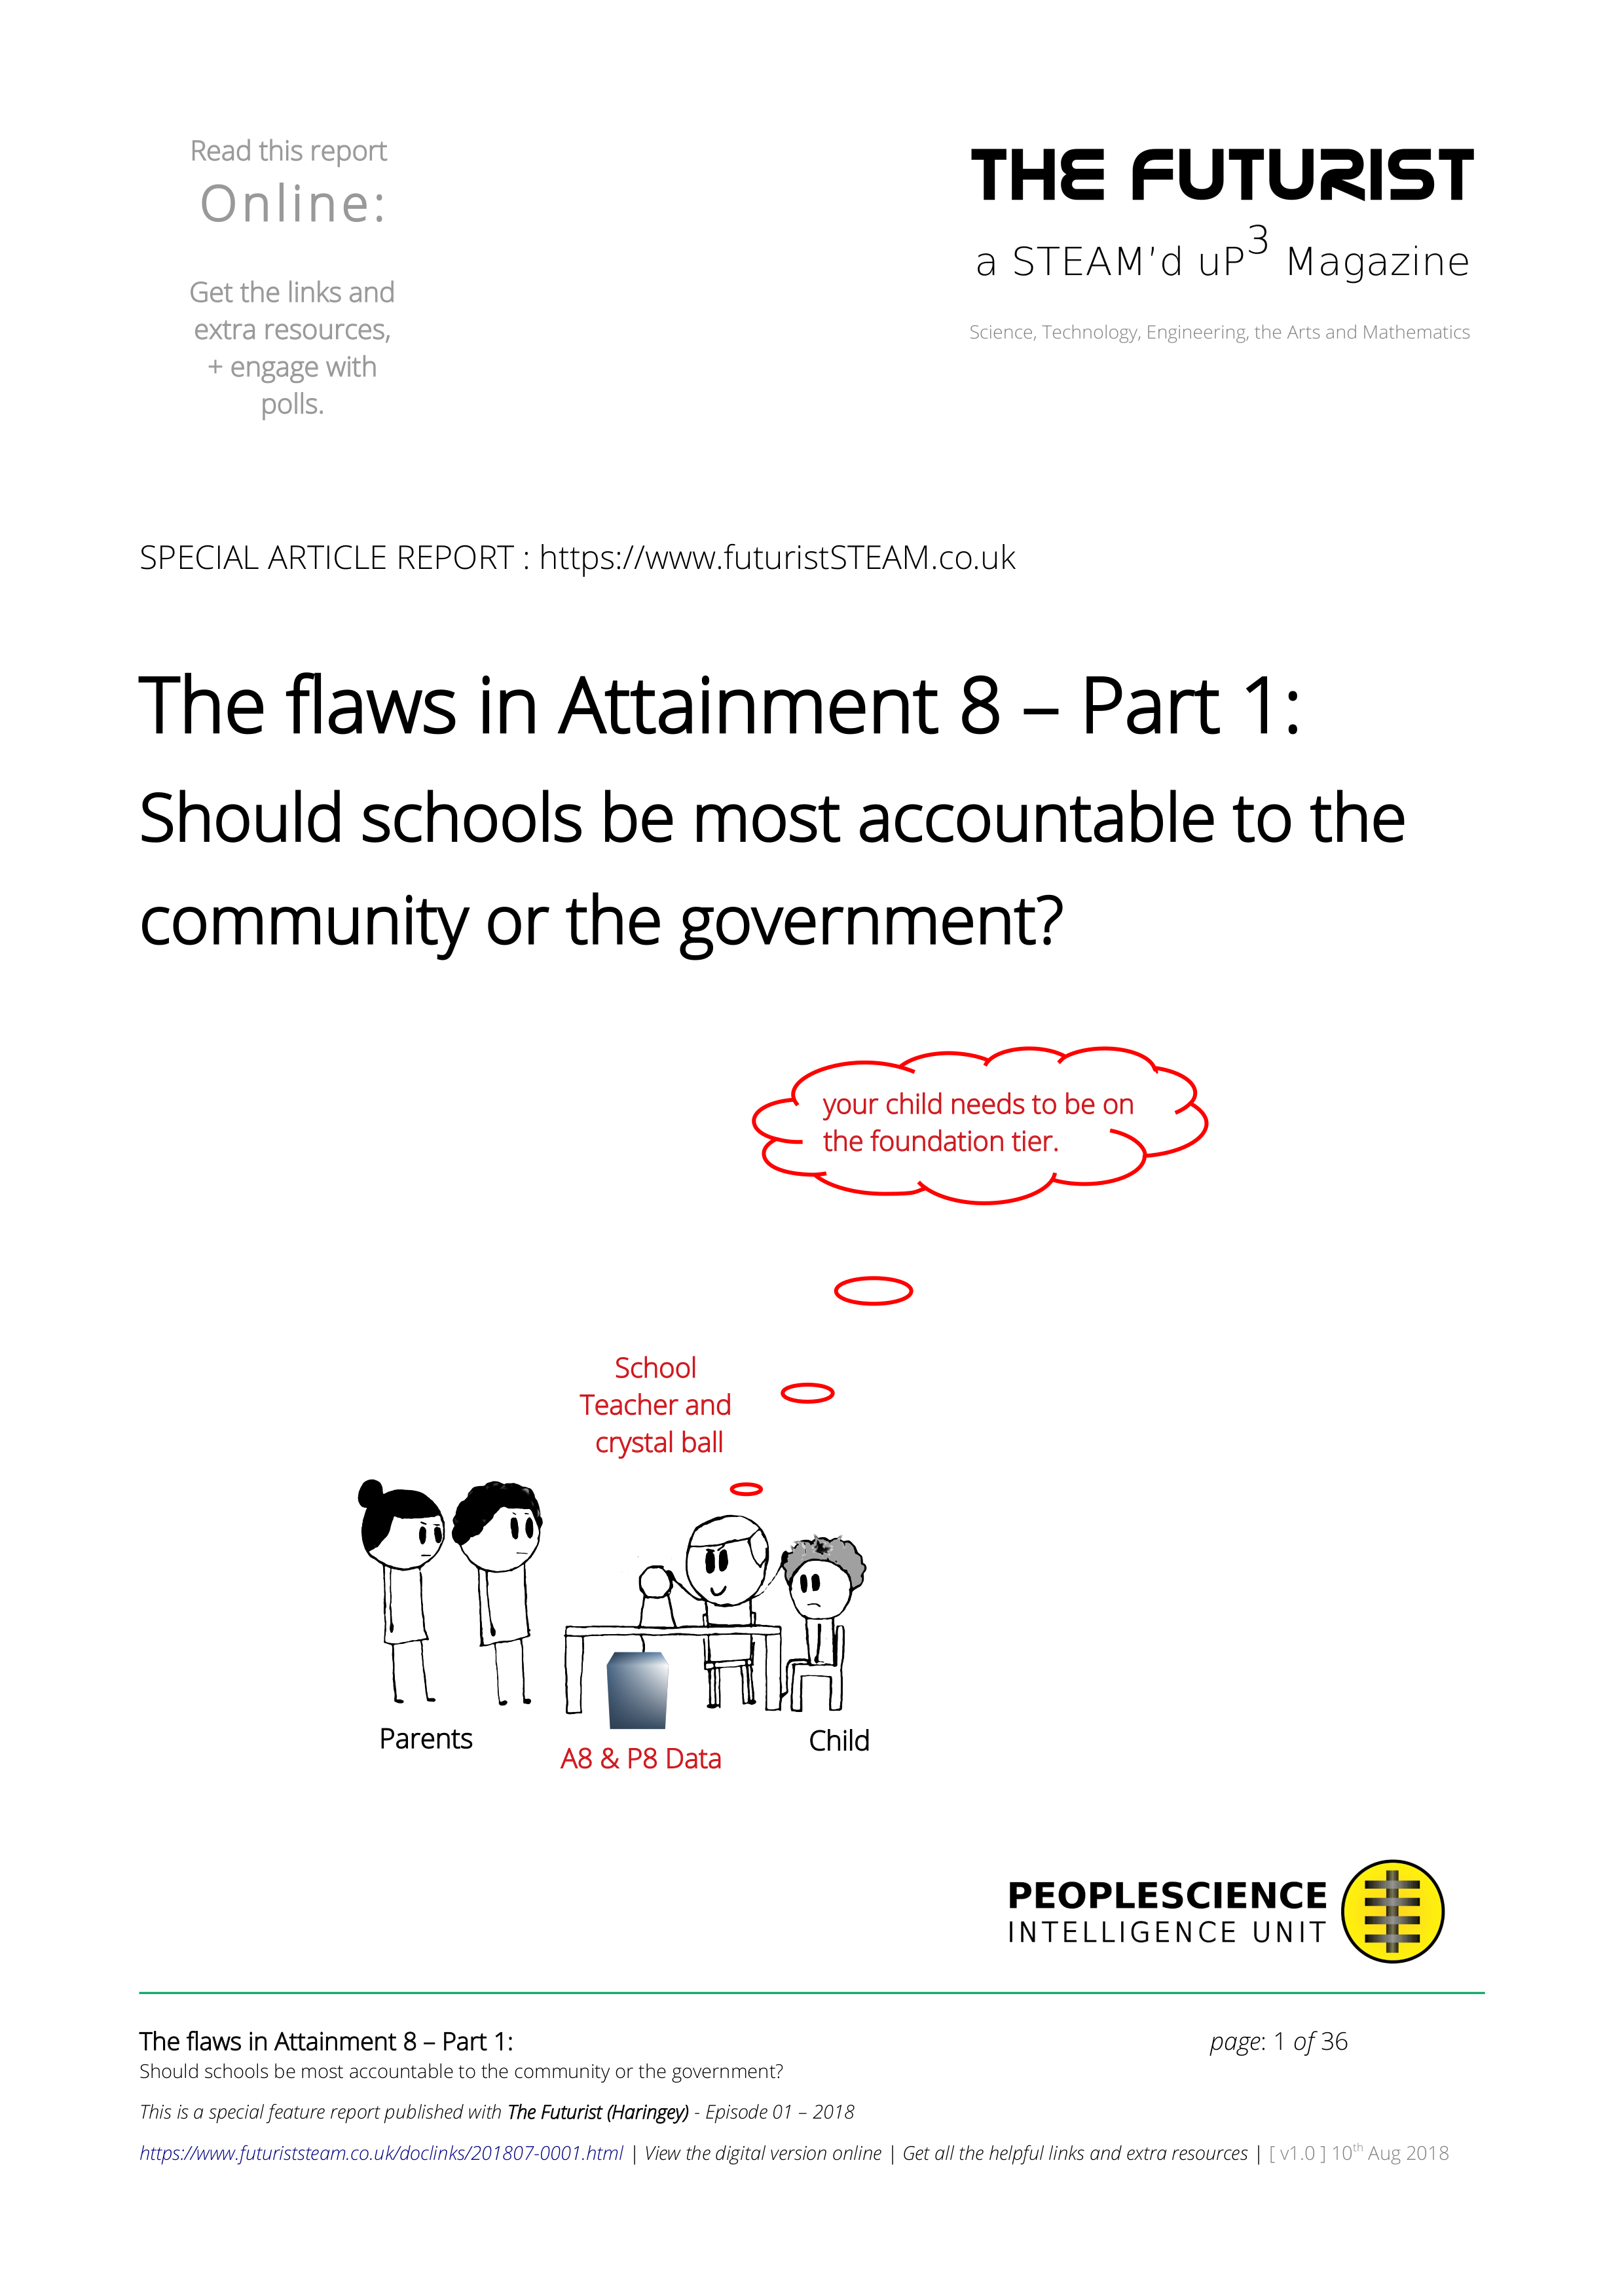 The_flaws_in_Attainment_8_-_Part_1